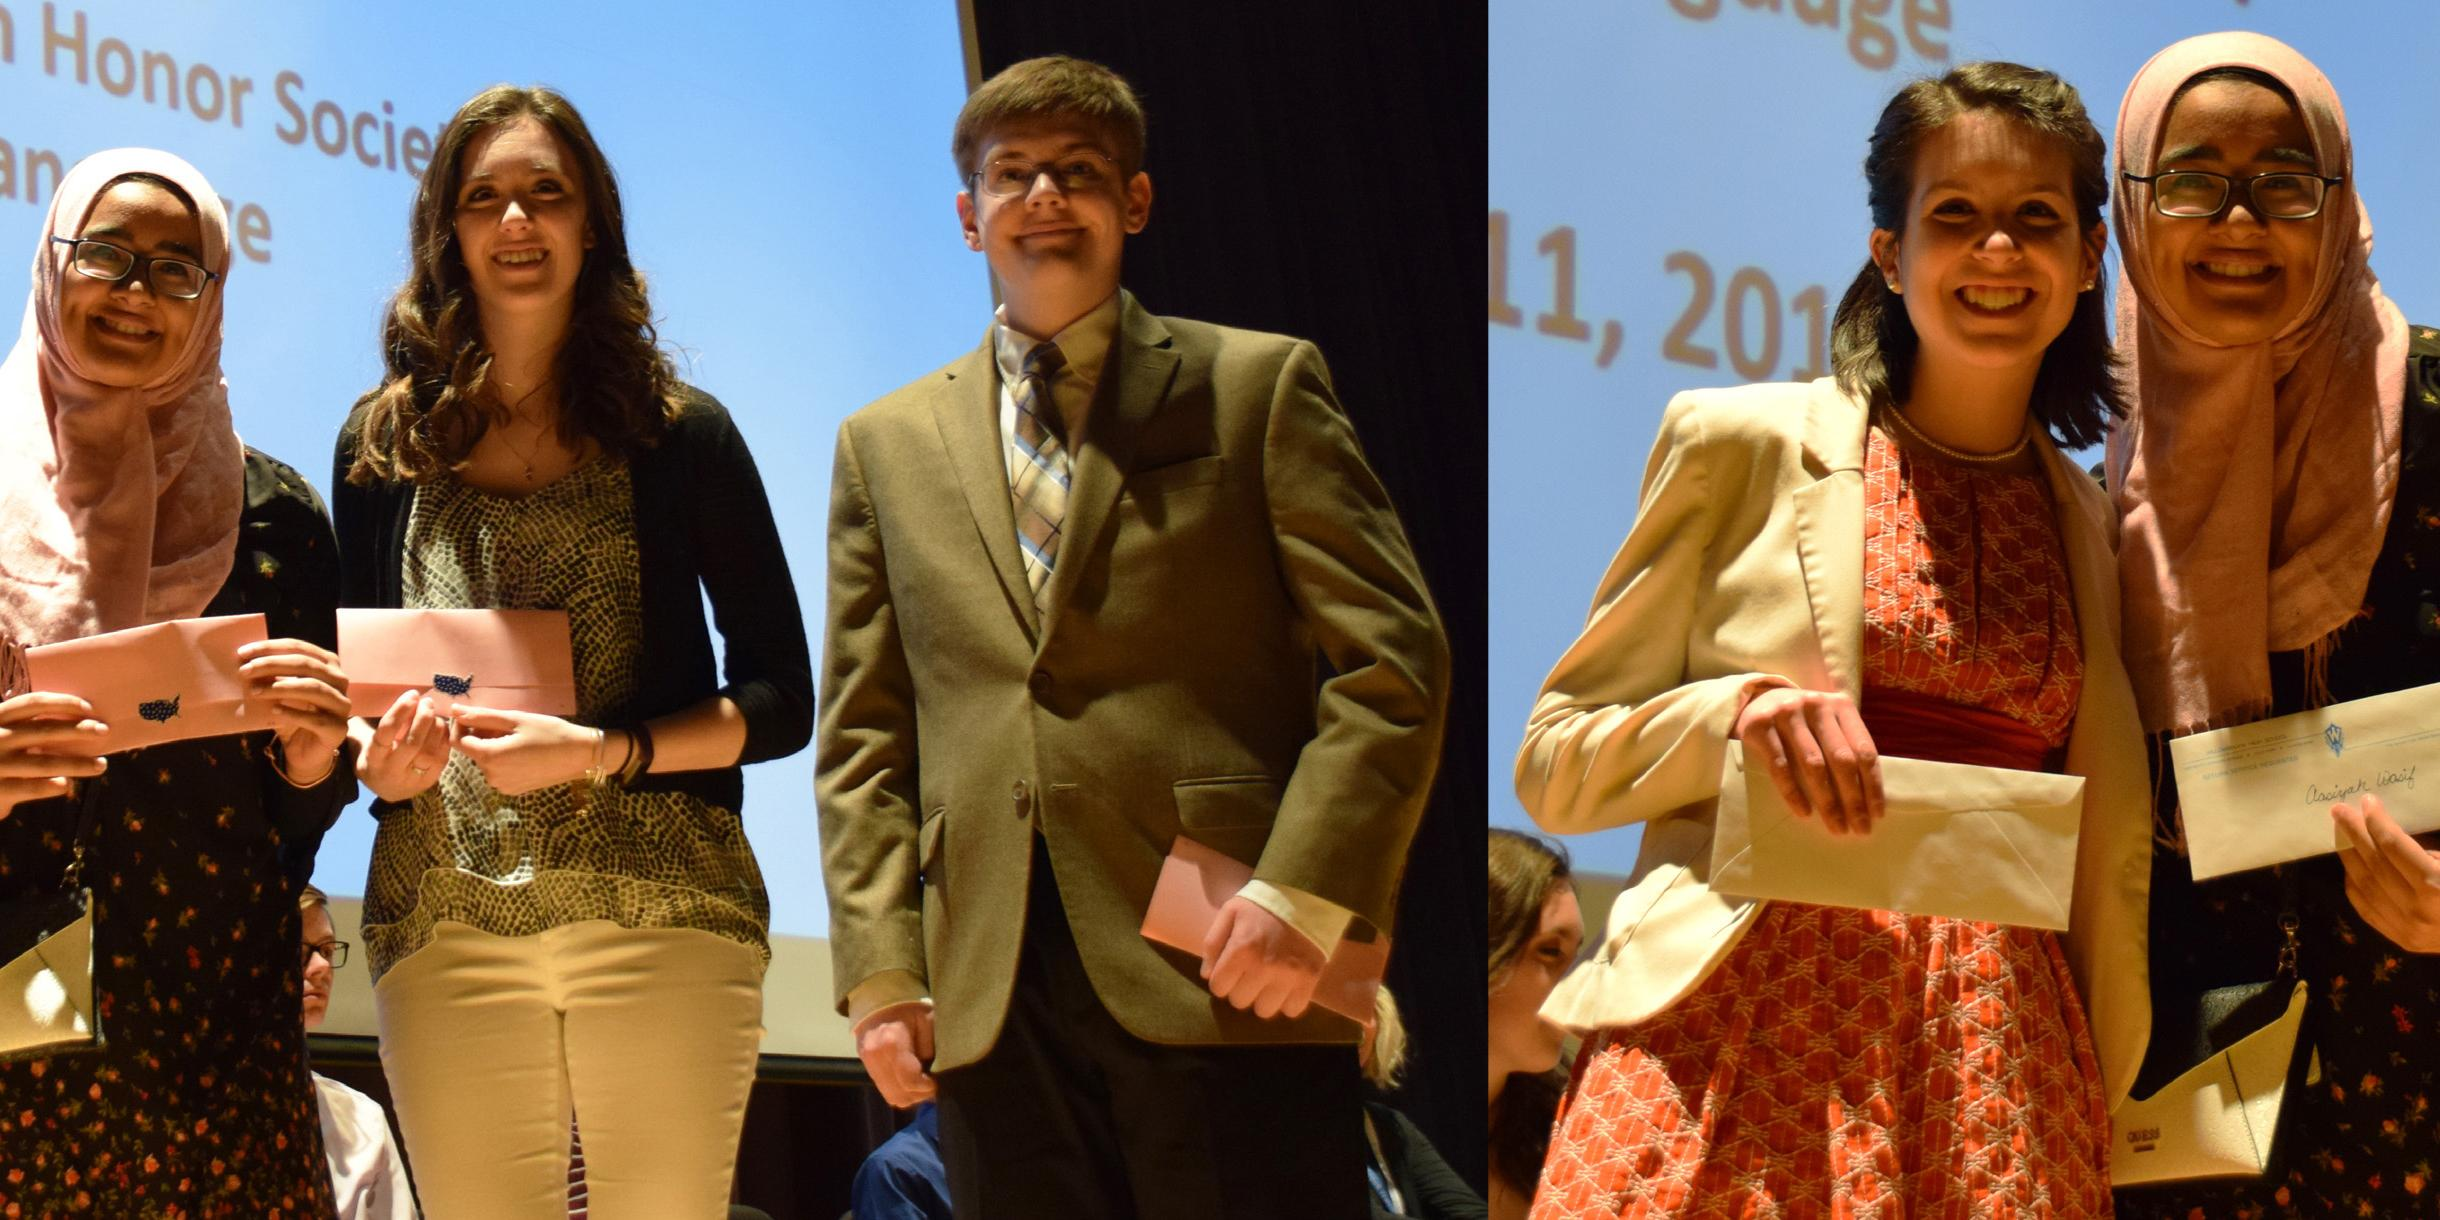 Willowbrook hosts joint ceremony for four honor societies